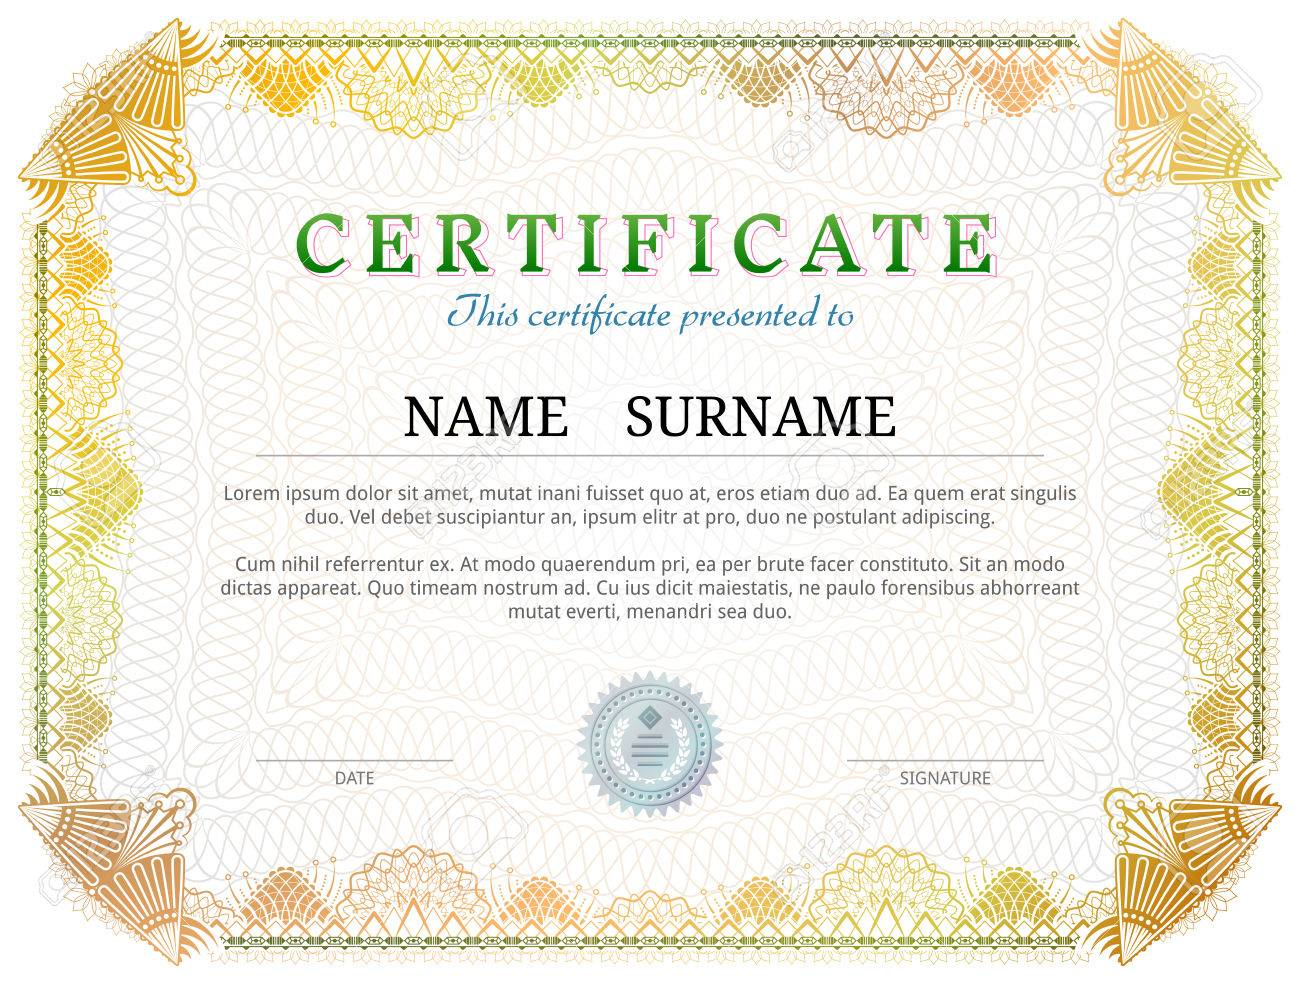 Certificate Template With Guilloche Elements Yellow Diploma - Patent certificate template